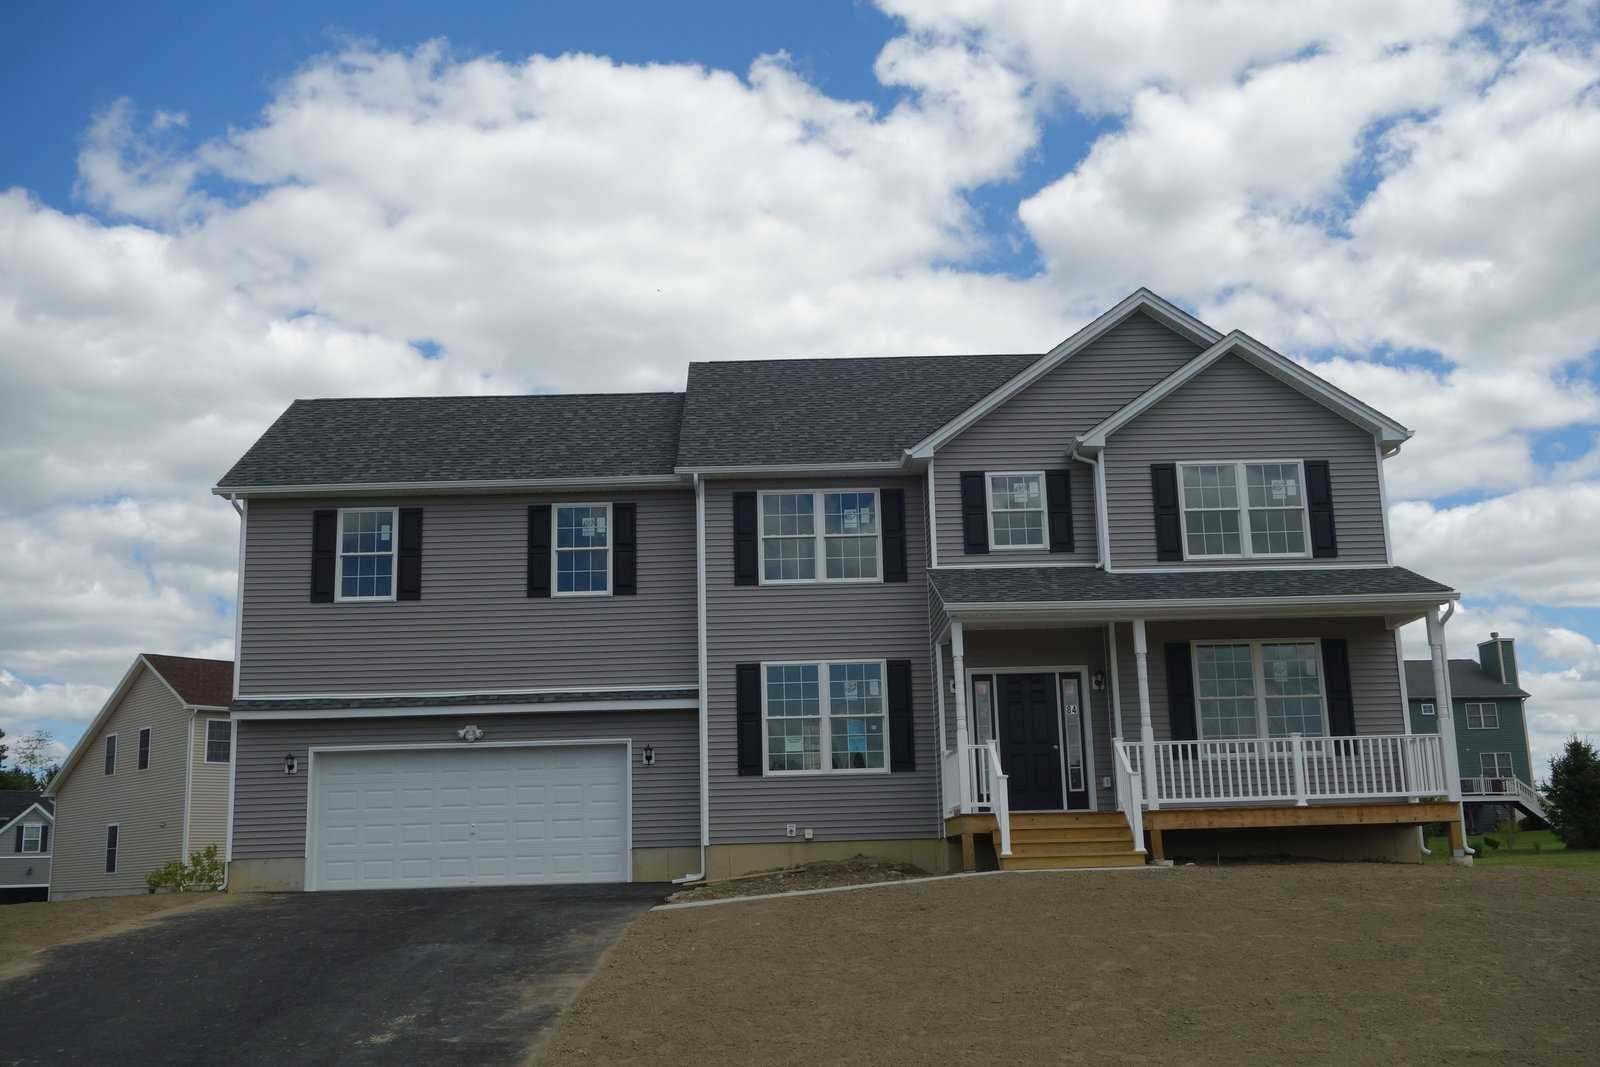 Single Family Home for Sale at 140 STRATFORD Drive 140 STRATFORD Drive Poughkeepsie, New York 12603 United States